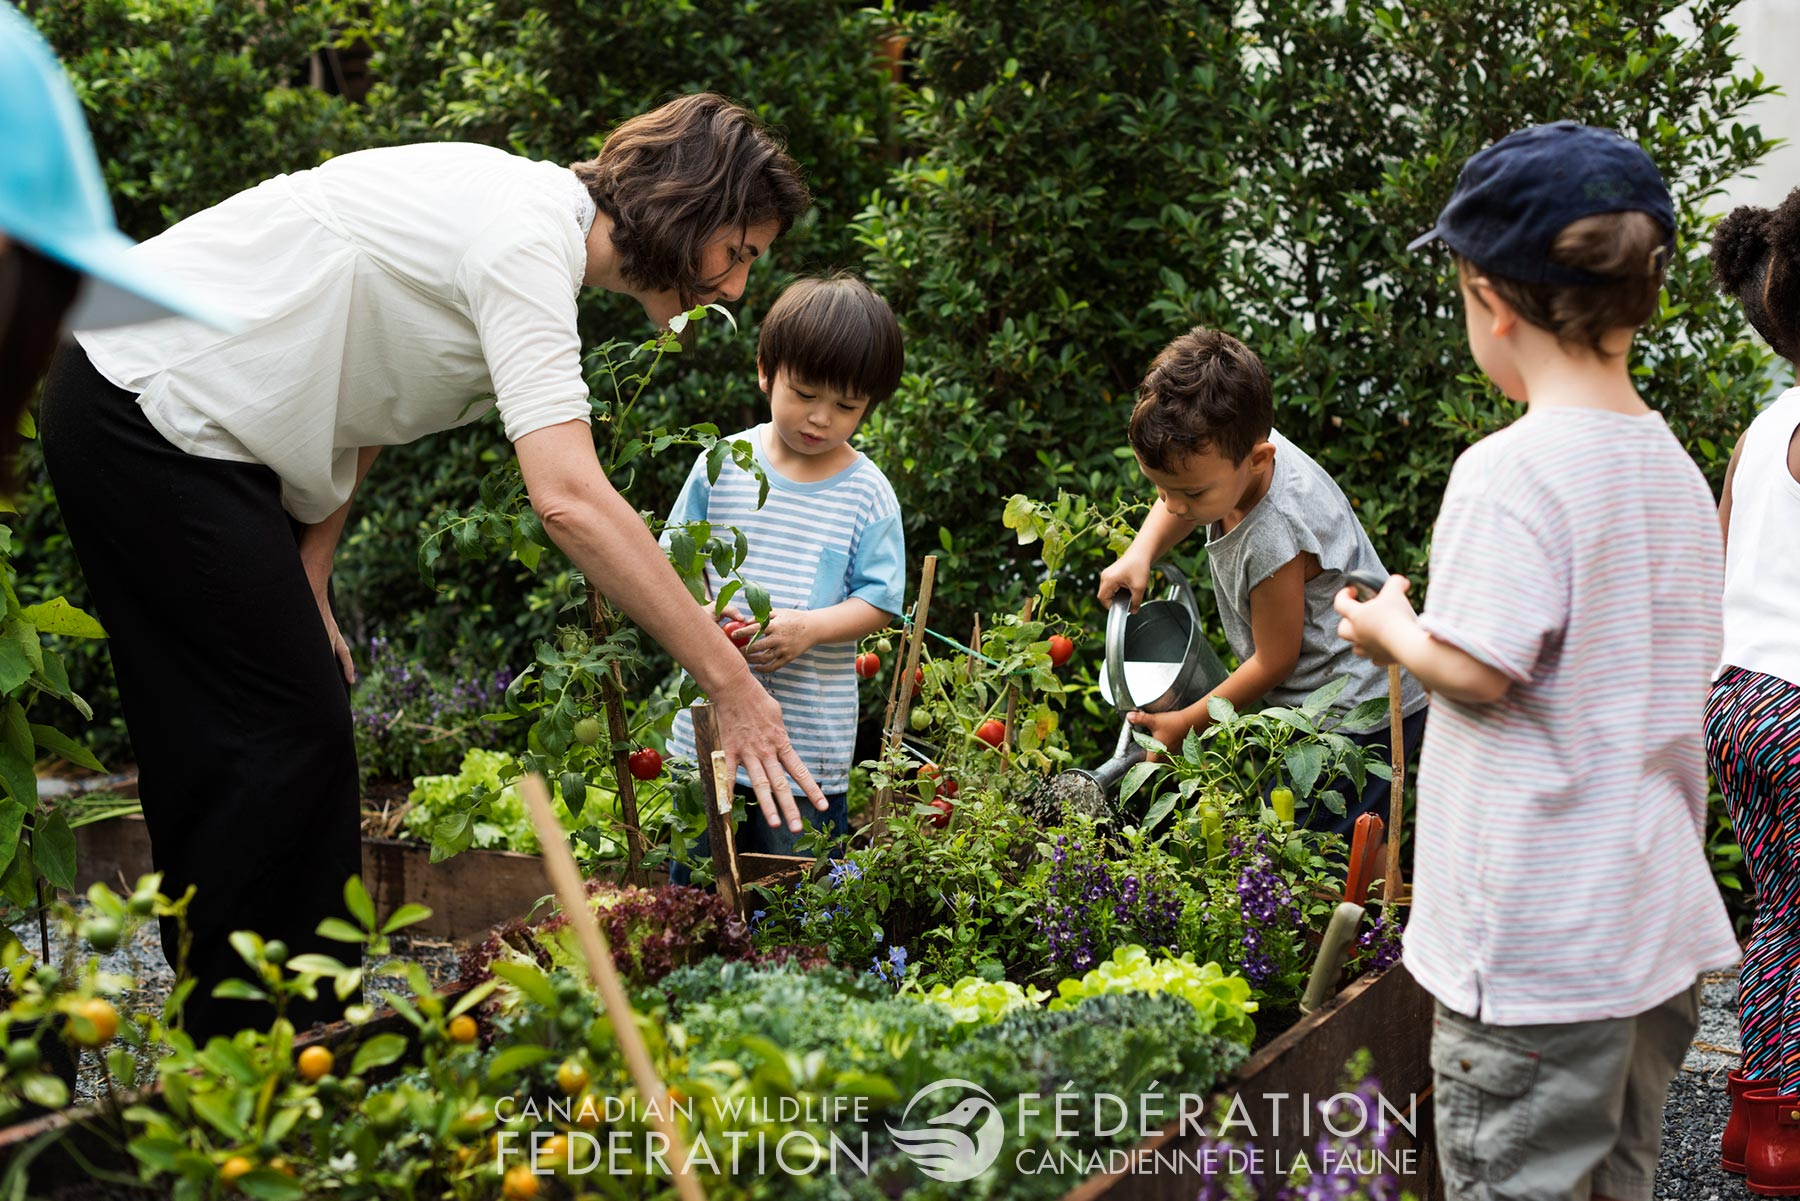 Gardening with Kids Helps Them Grow — And Wildlife, Too!